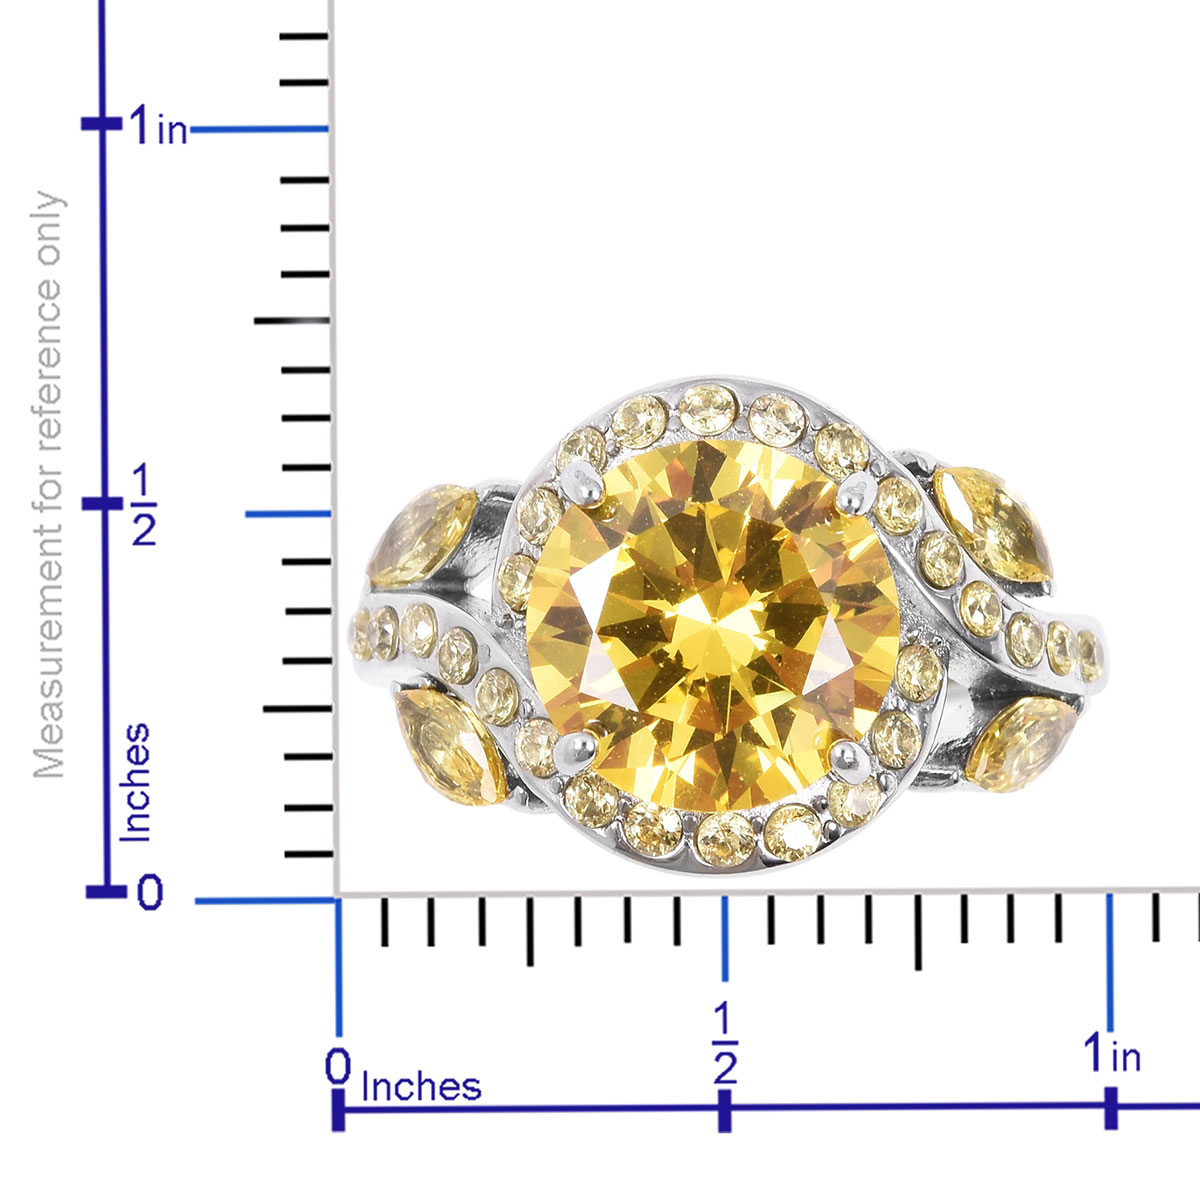 Yellow CZ Ring (Size 8) and Pendant Necklace (20 in) in Stainless Steel 4.95 ctw